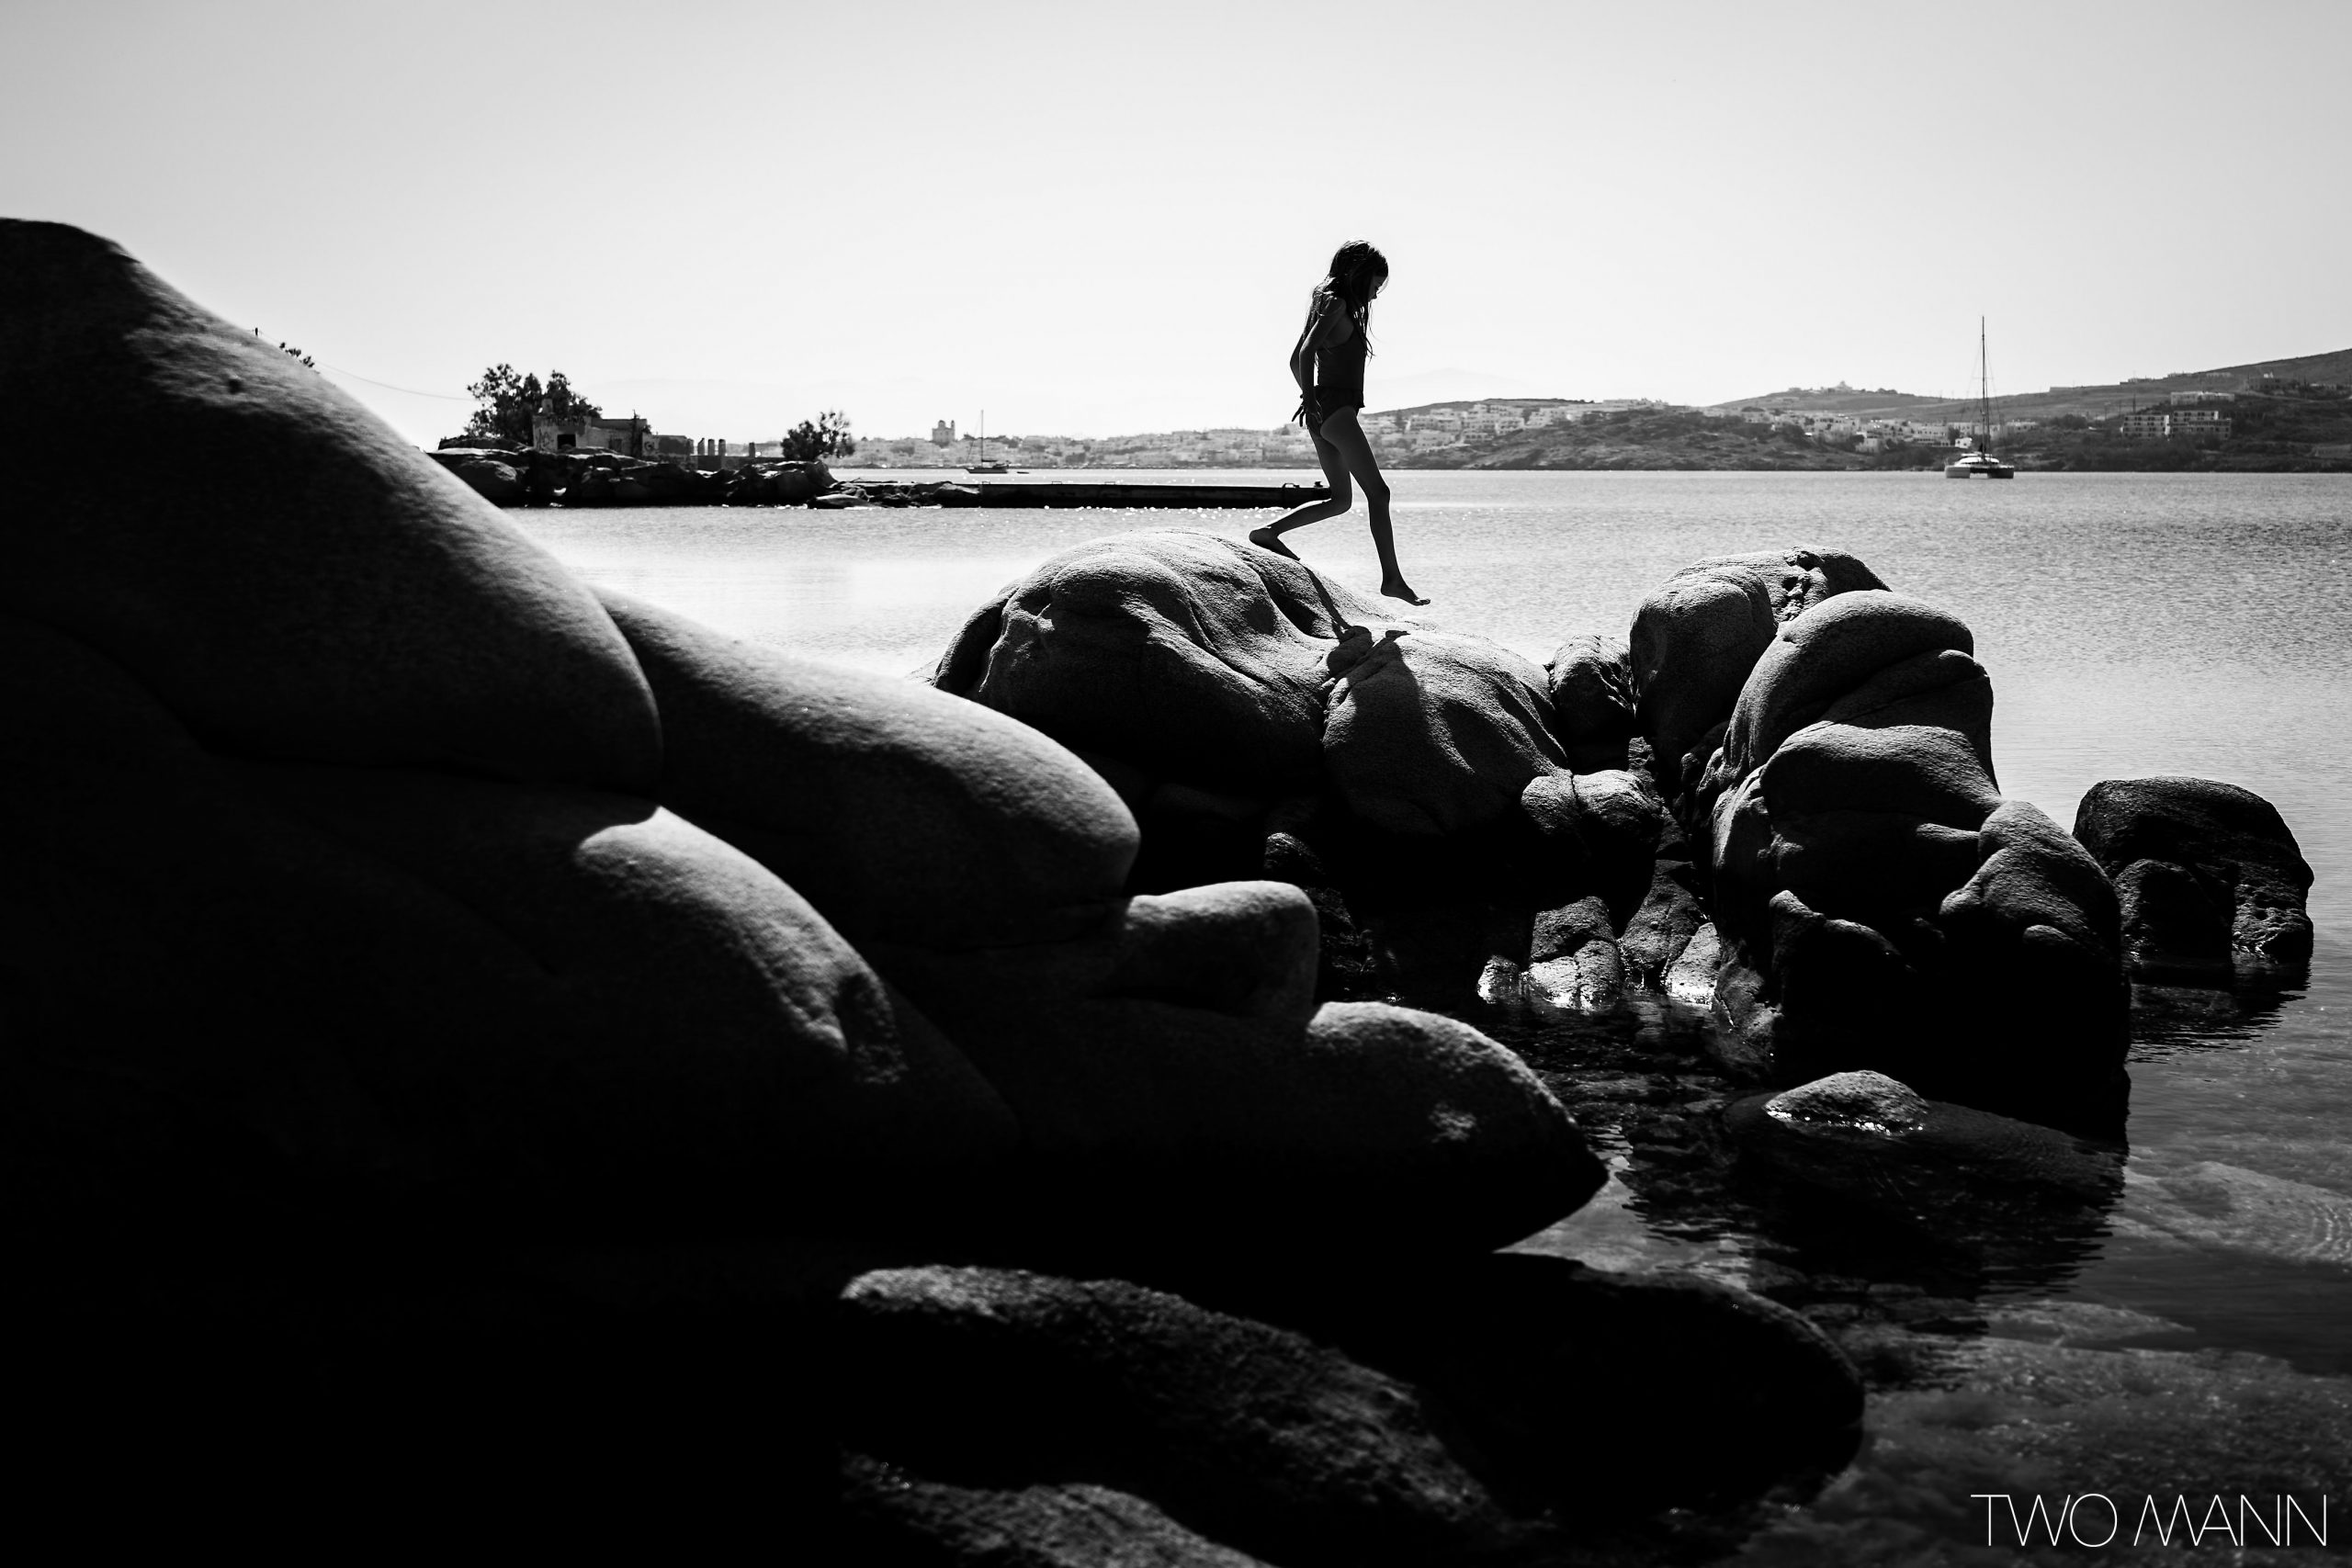 Young girl walking on large rocks on seashore